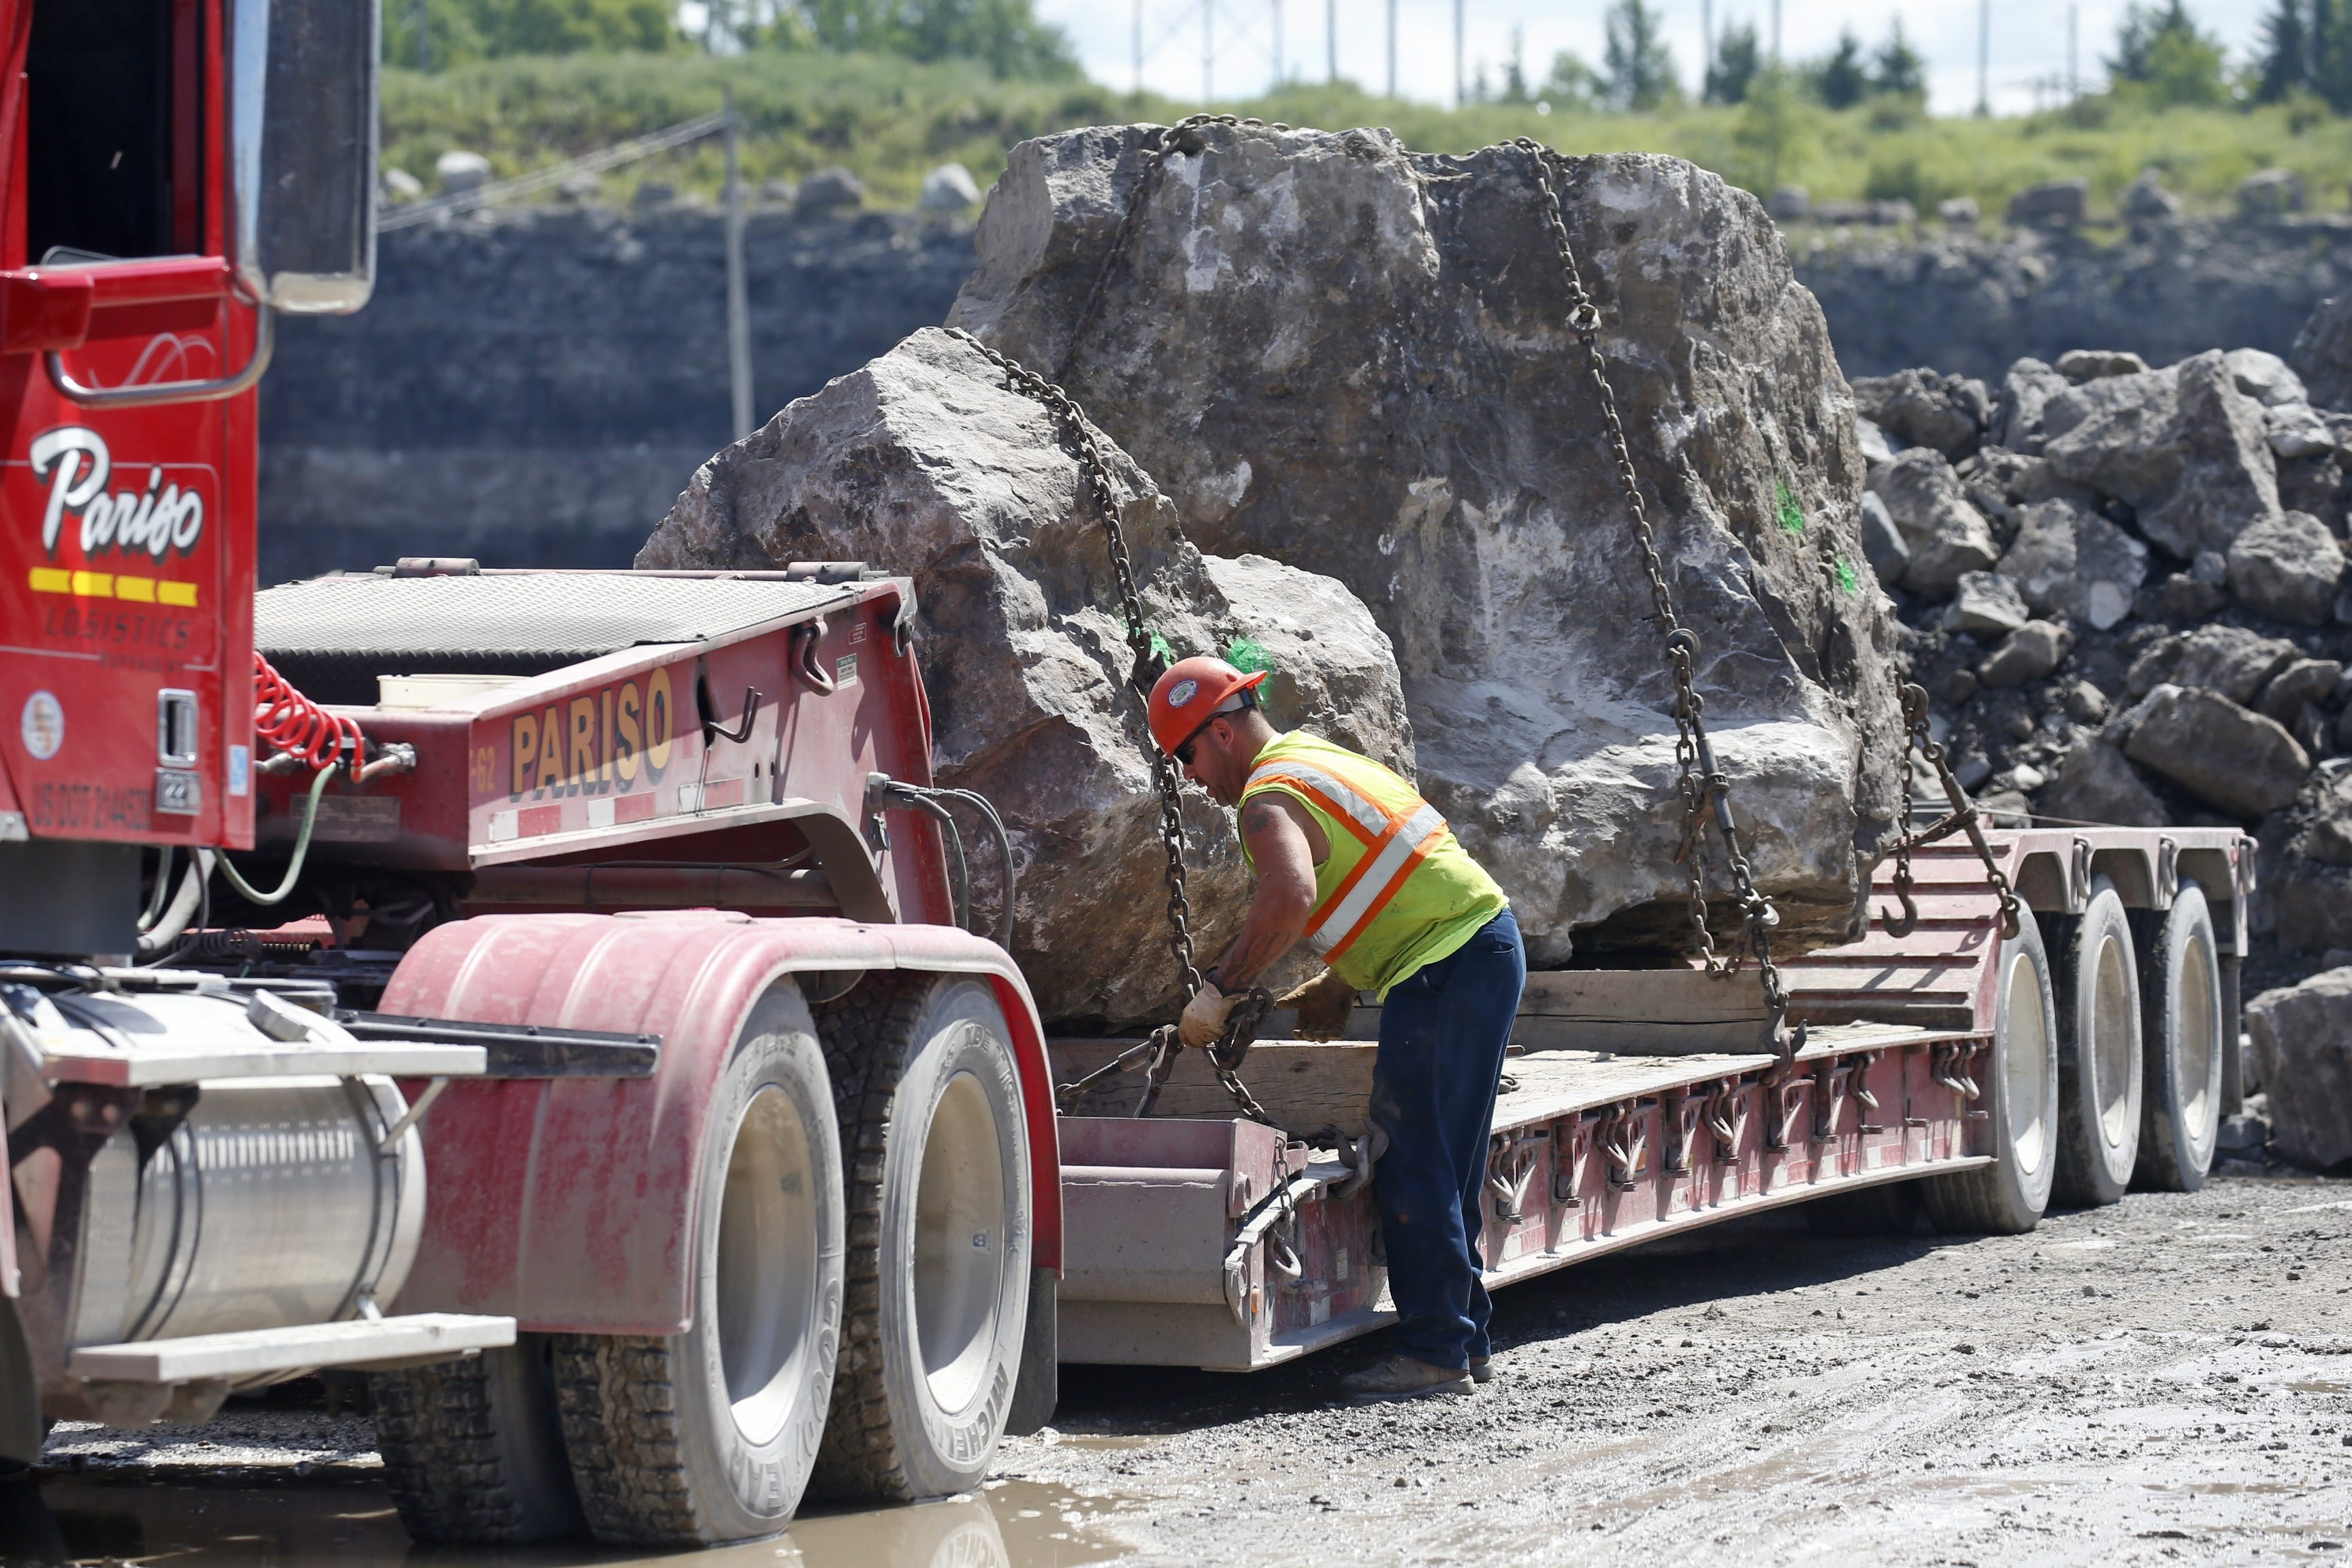 A driver secures some large rocks destined for use in a breakwall project in Buffalo's Outer Harbor.